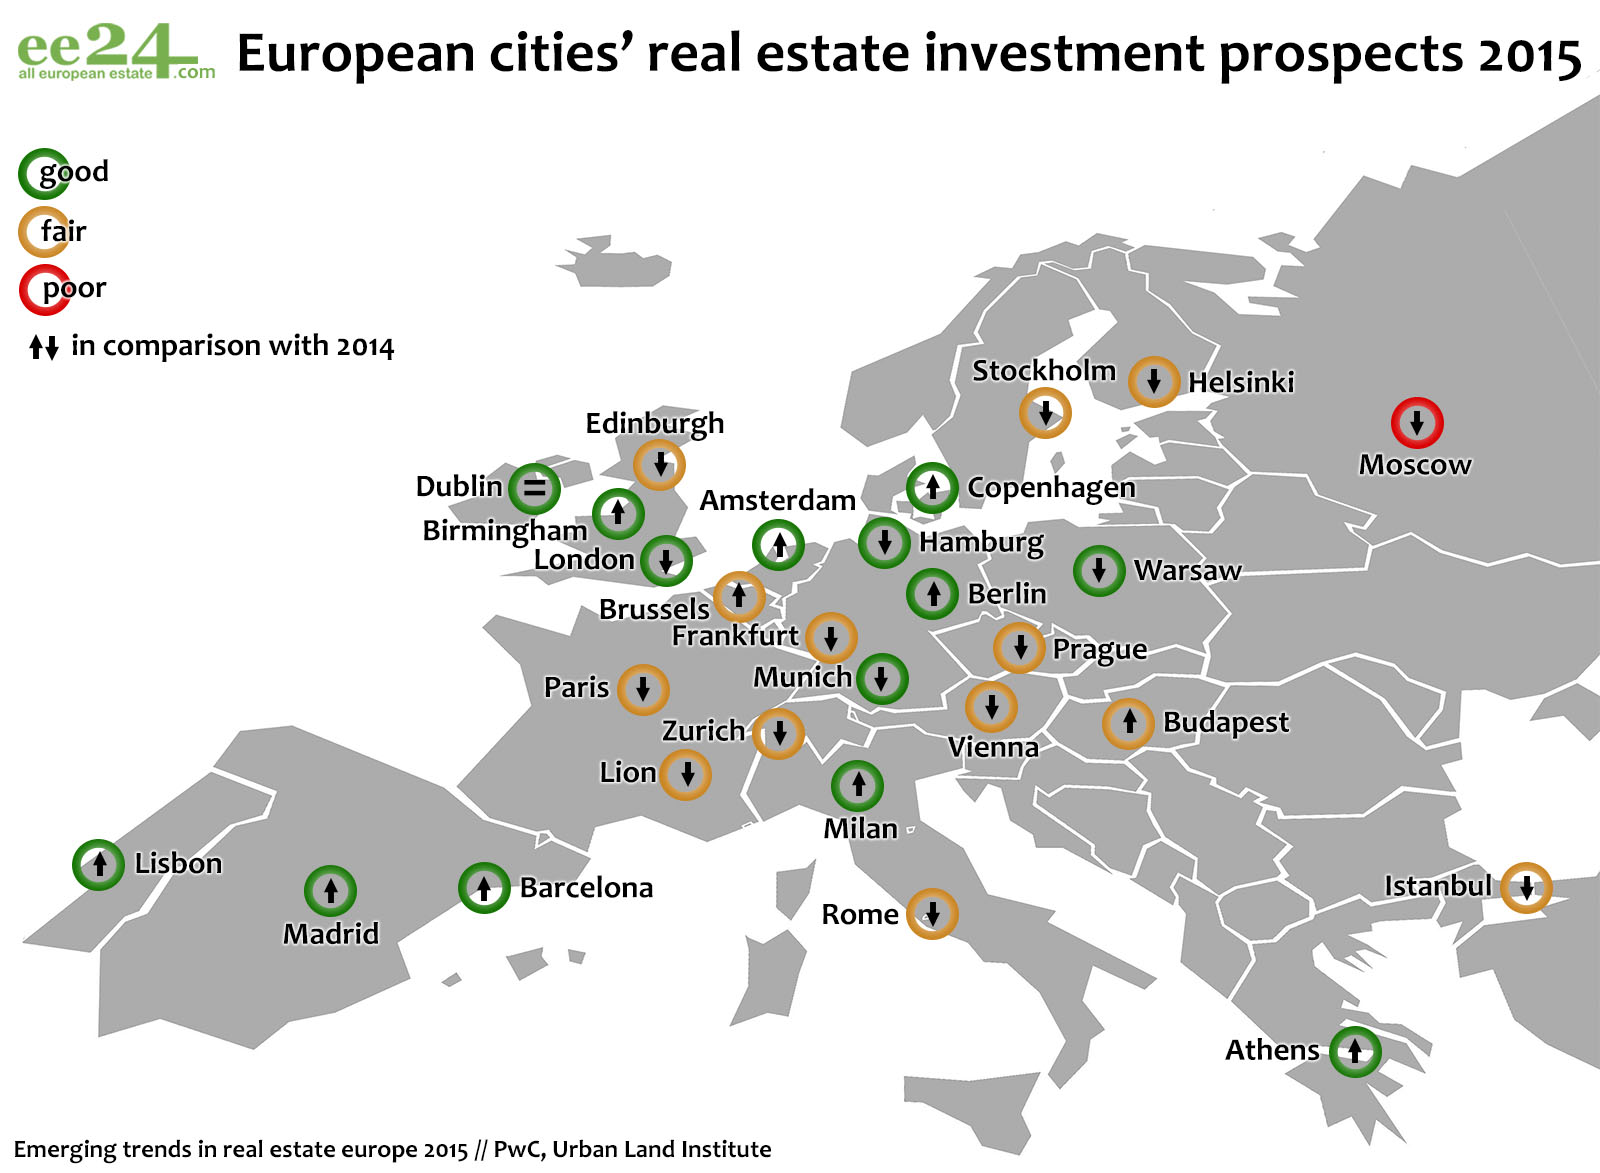 The best cities in Europe for real estate investments – 2015 | Photo 1 | ee24